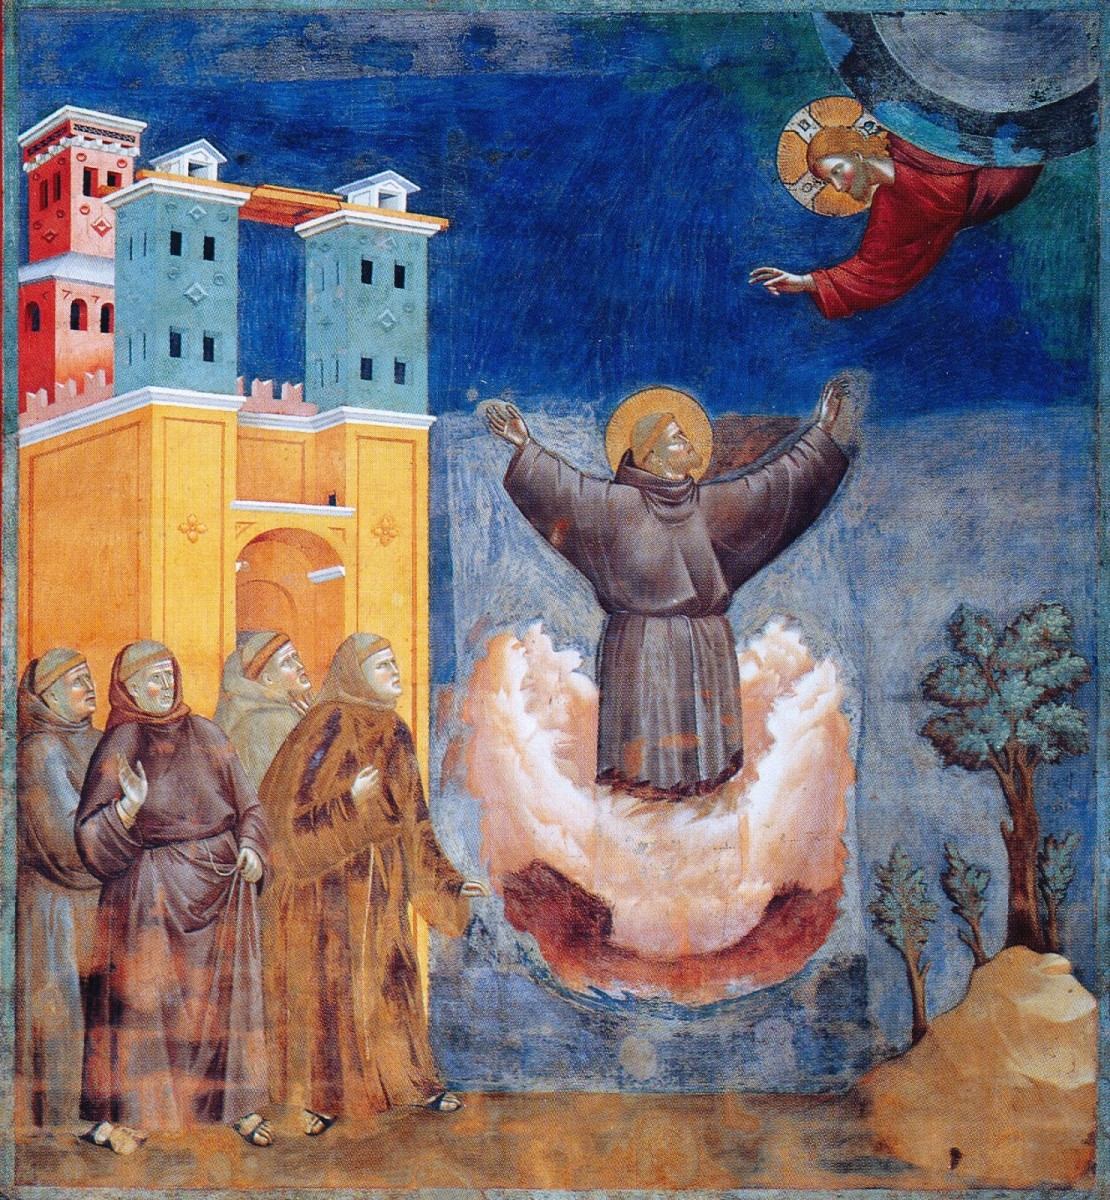 just one of many images depicting St. Francis of Assisi during his moment of vision and stigmata